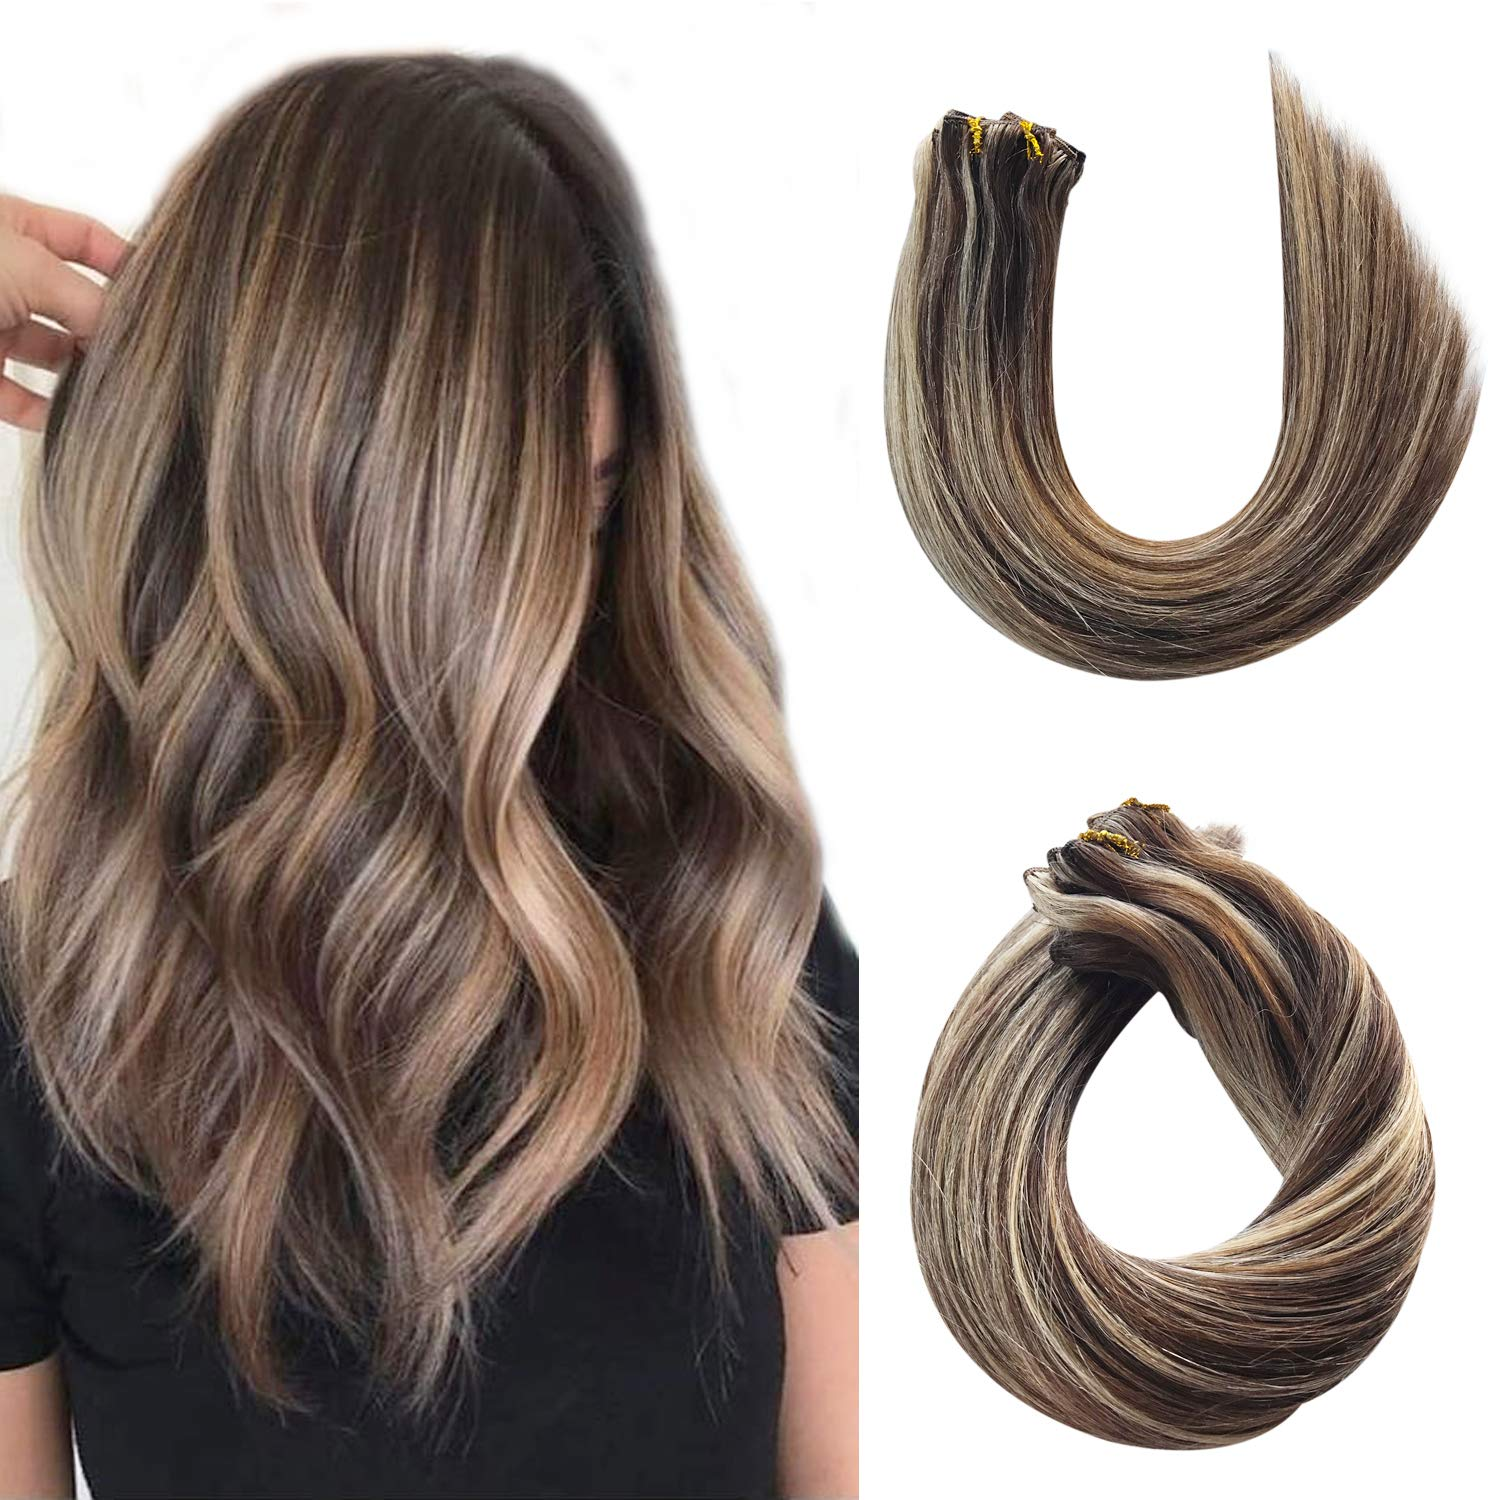 Clip in Remy Hair Extensions Real Human Hair Extensions Clip on for Women Double Weft Medium Brown with Strawberry Blonde Highlights 120g Thicken Full Head Natural Ponytail 7pcs 17 Clips 14 Inch